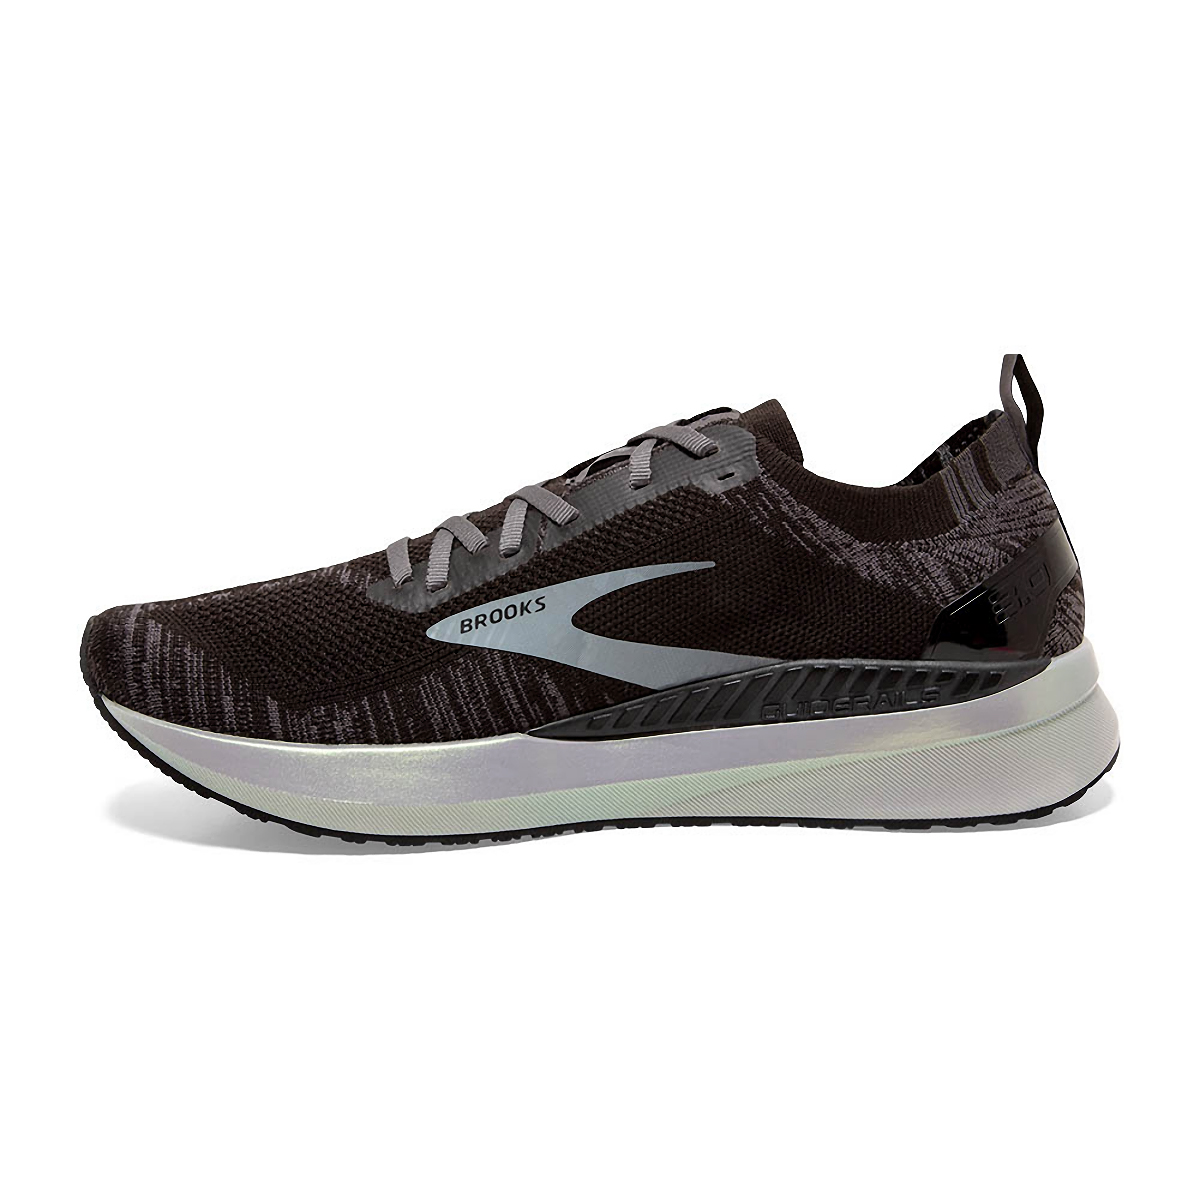 Men's Brooks Bedlam 3 Running Shoe - Color: Black/Blackened - Size: 8.5 - Width: Regular, Black/Blackened, large, image 2